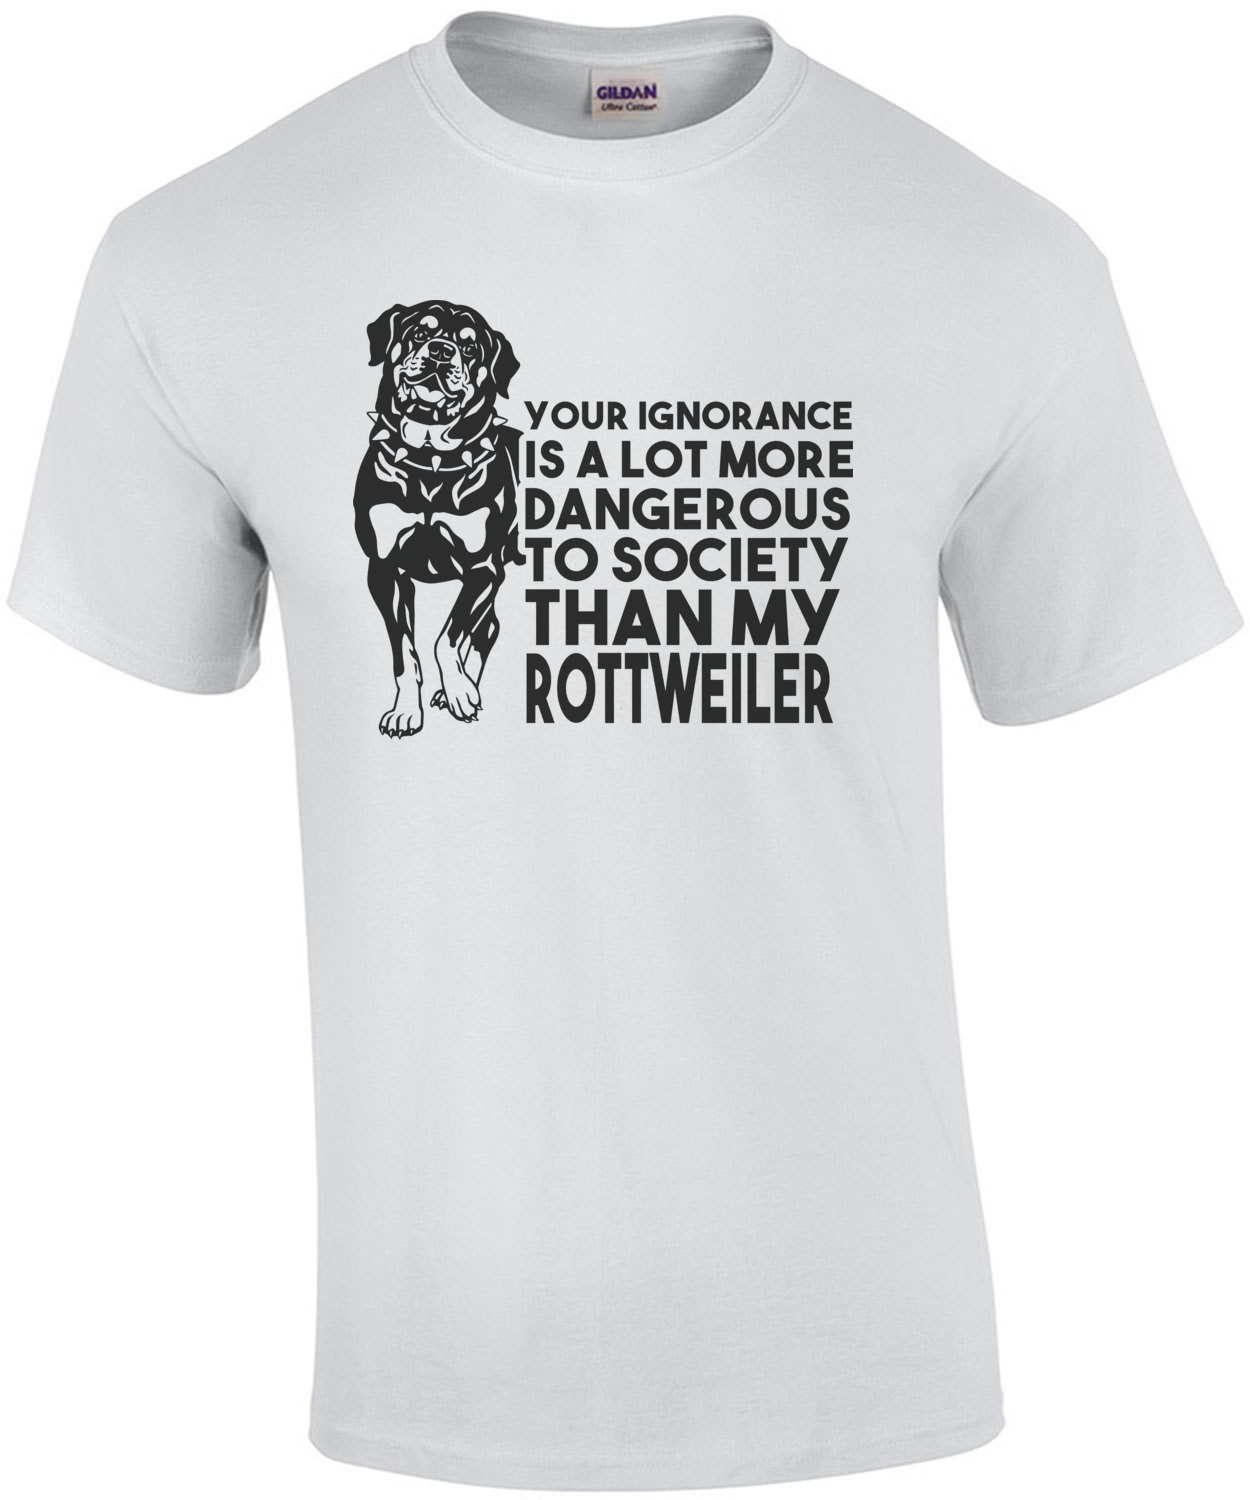 Your ignorance is a lot more dangerous to society than my rottweiler - Rottweiler T-Shirt